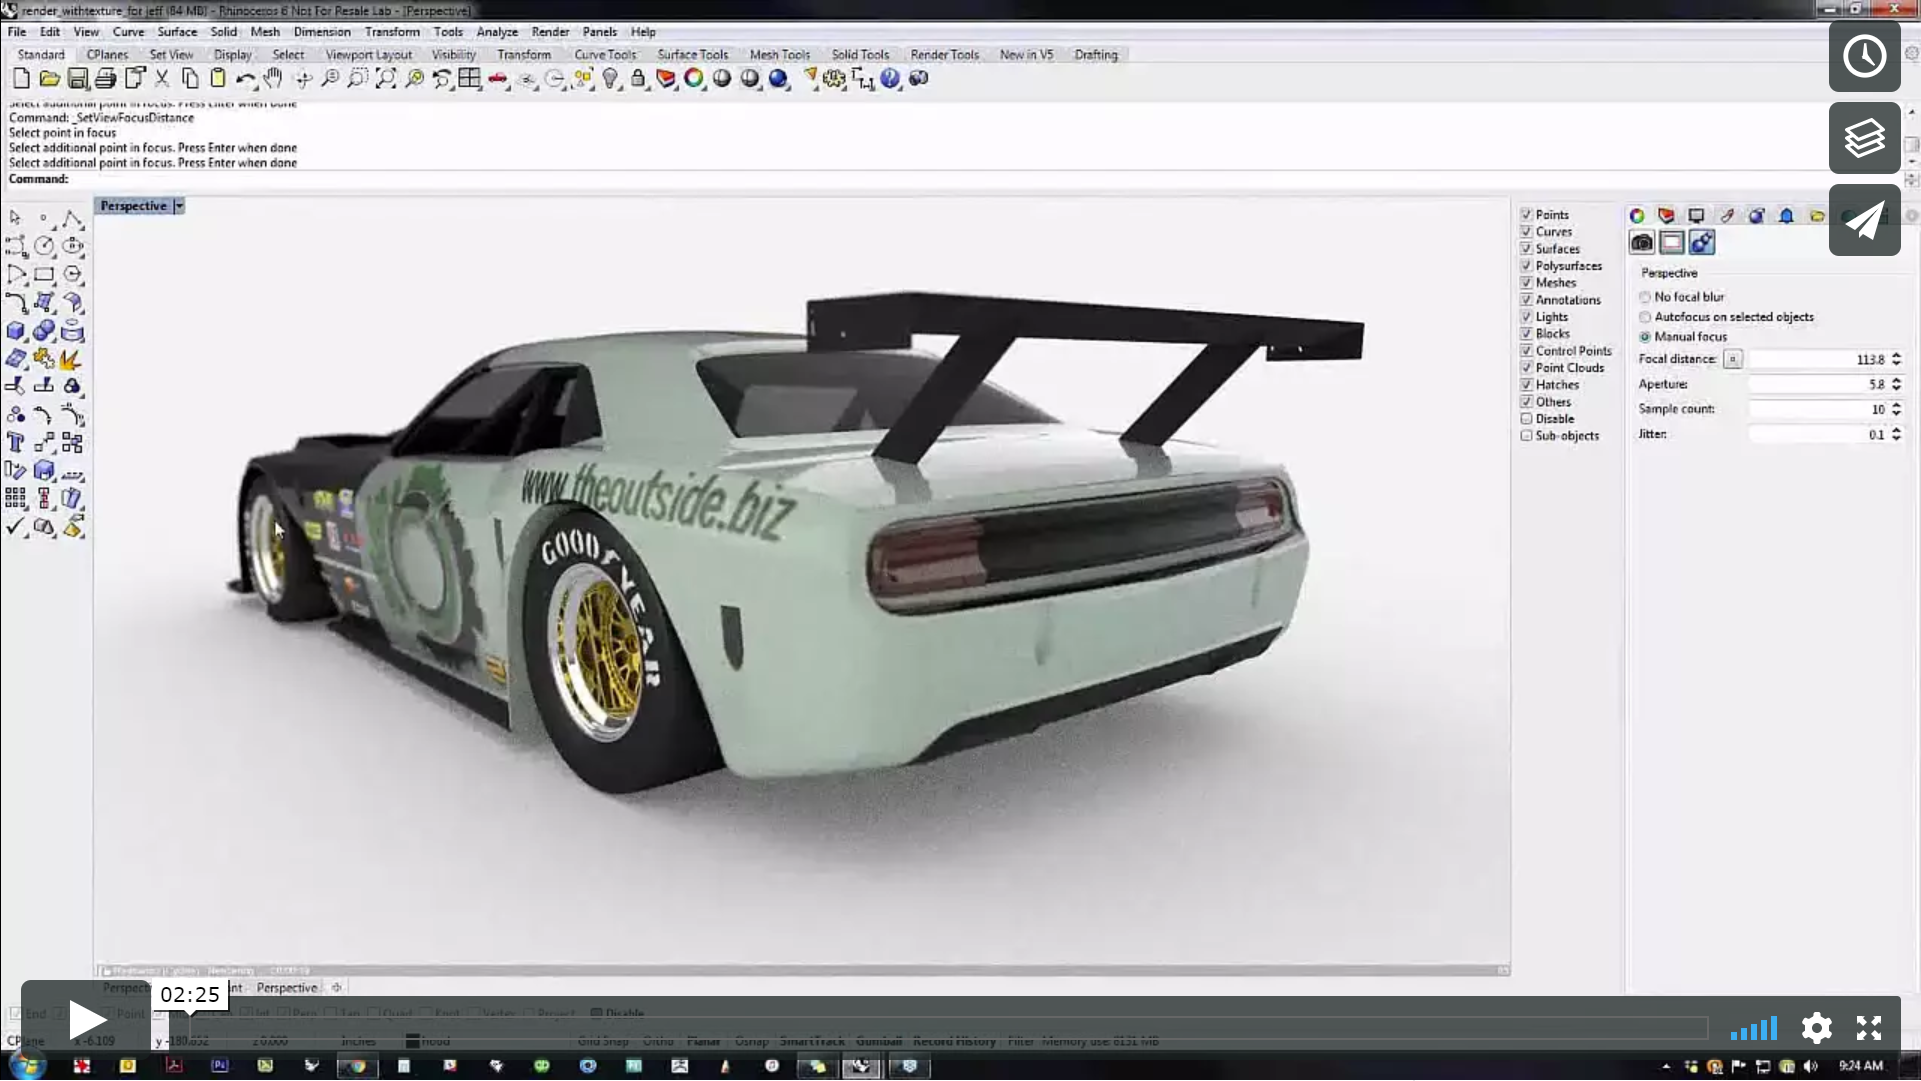 Focal blur in the new advanced raytrace engine in Rhino 6